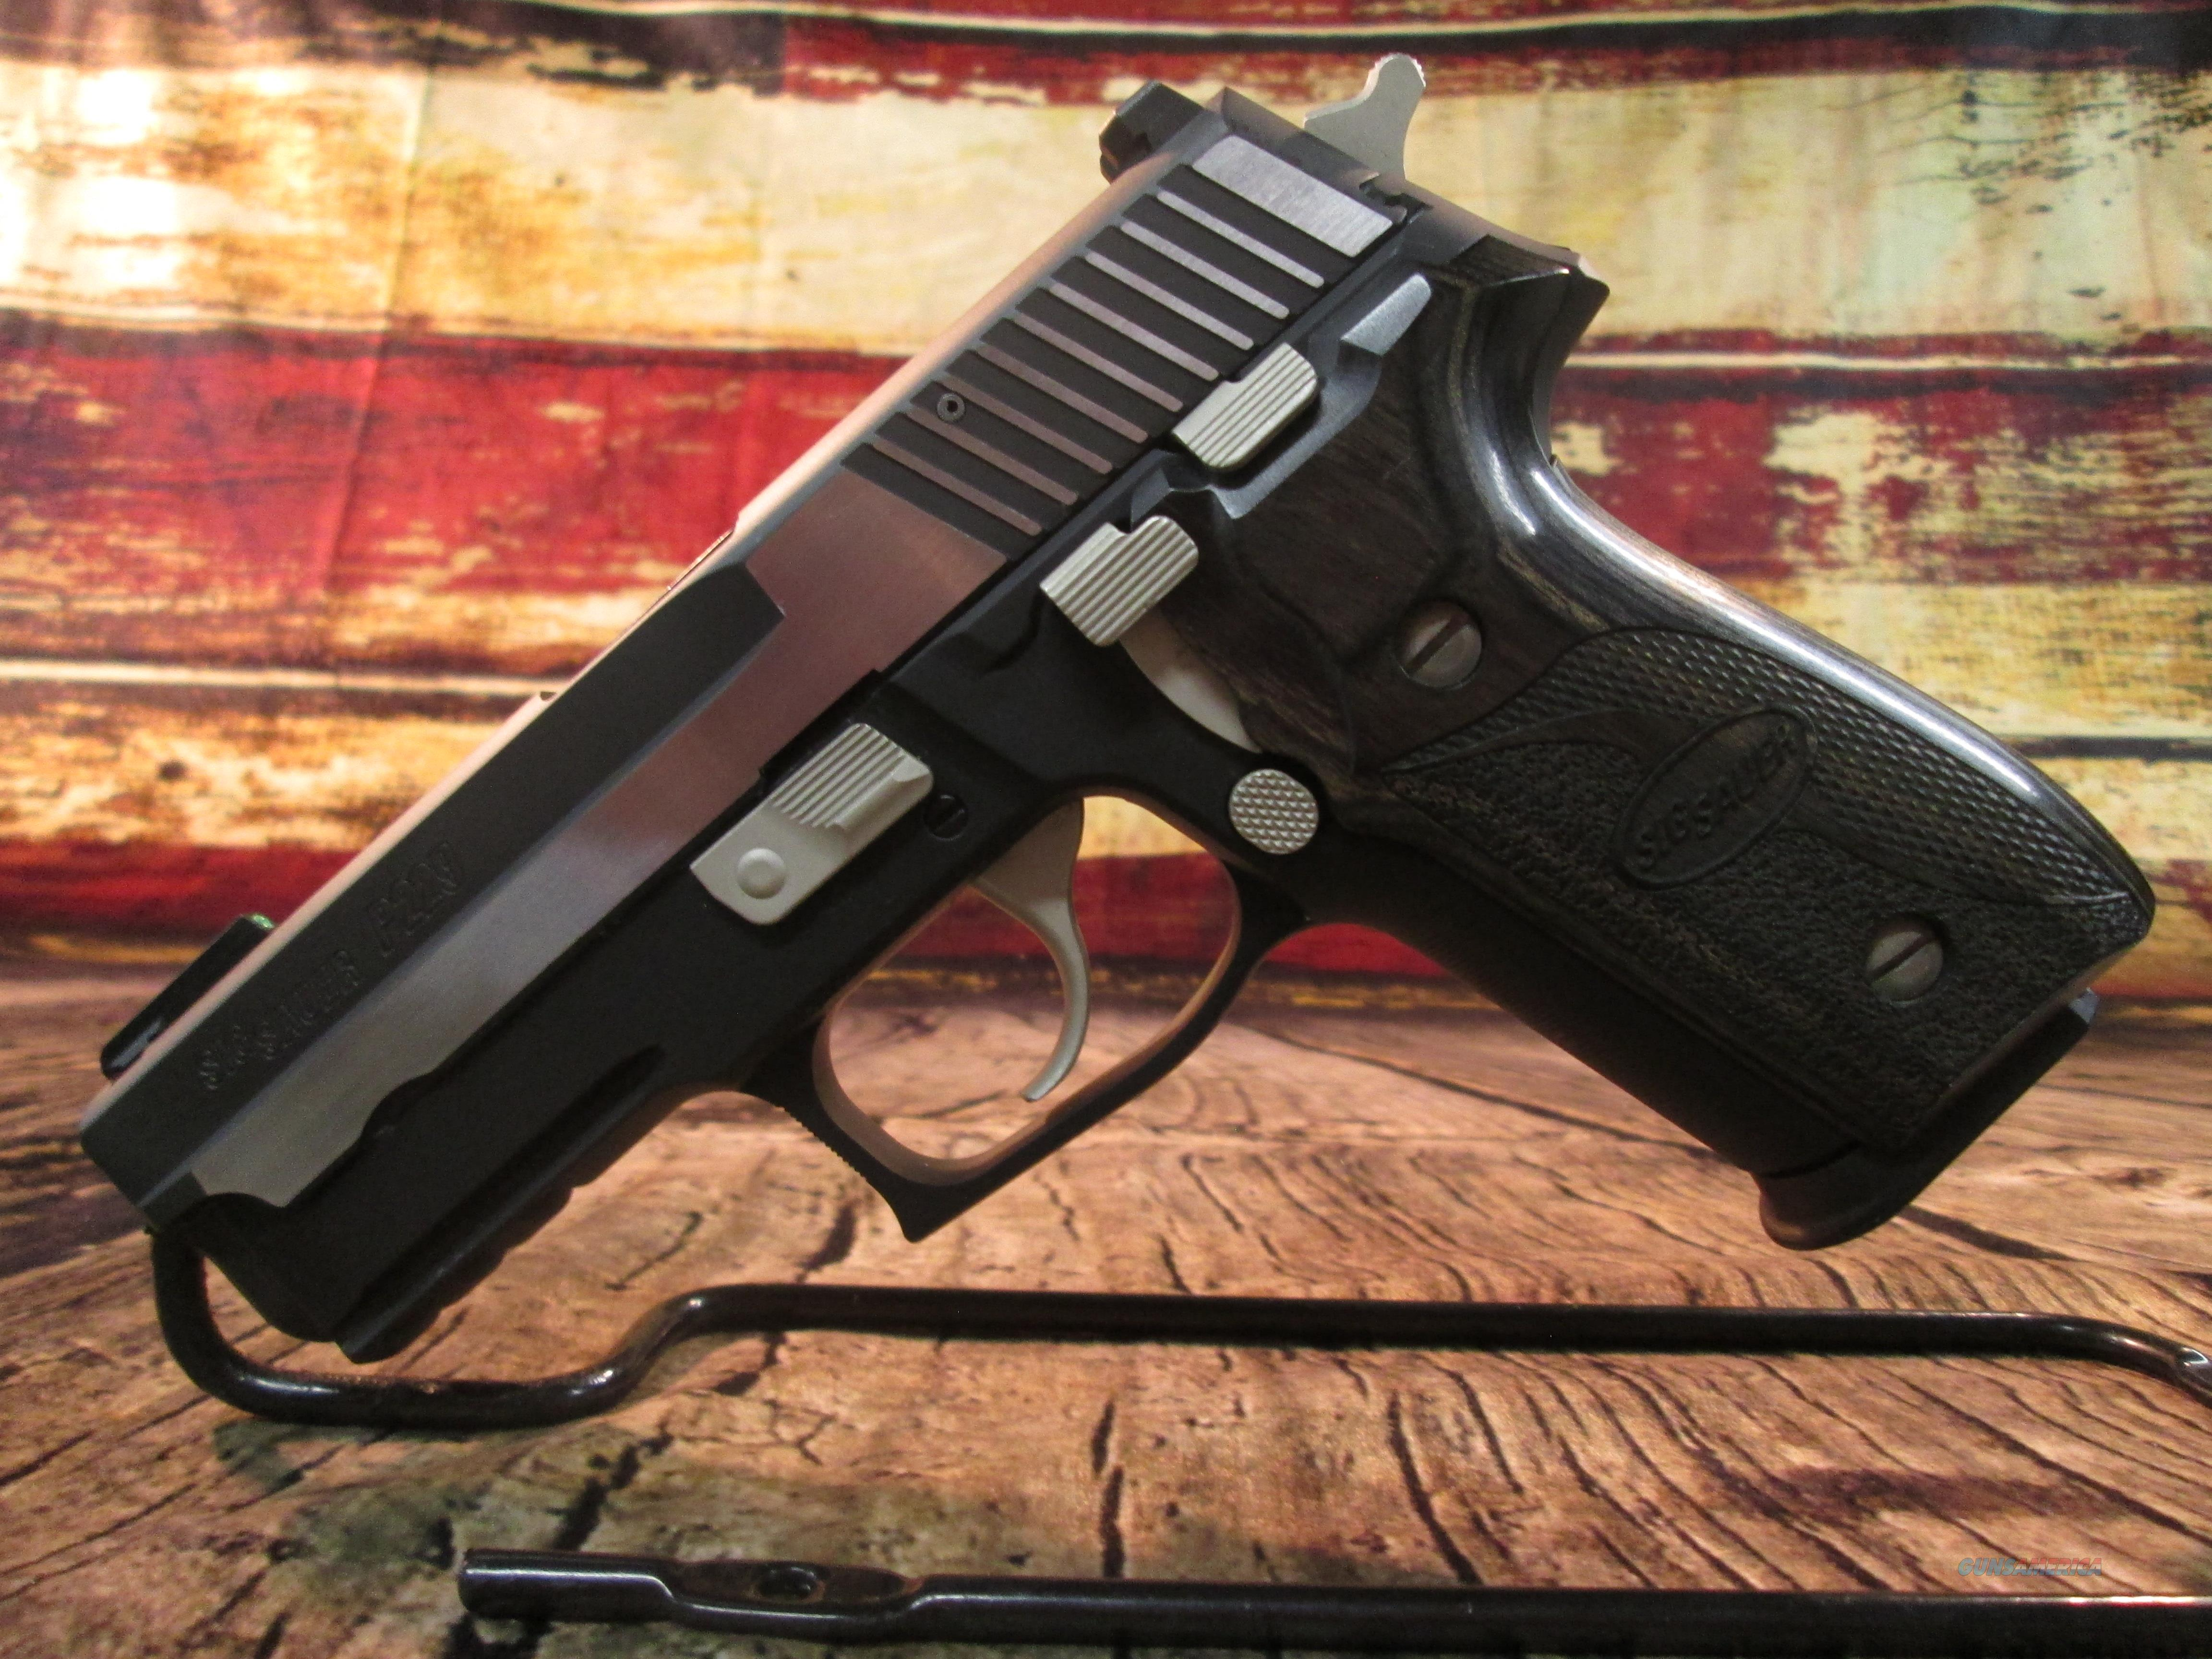 SIG SAUER P229 EQUINOX 9MM WITH SIG LASER BLACKENED STAINLESS USED (62660)   Guns > Pistols > Sig - Sauer/Sigarms Pistols > P229